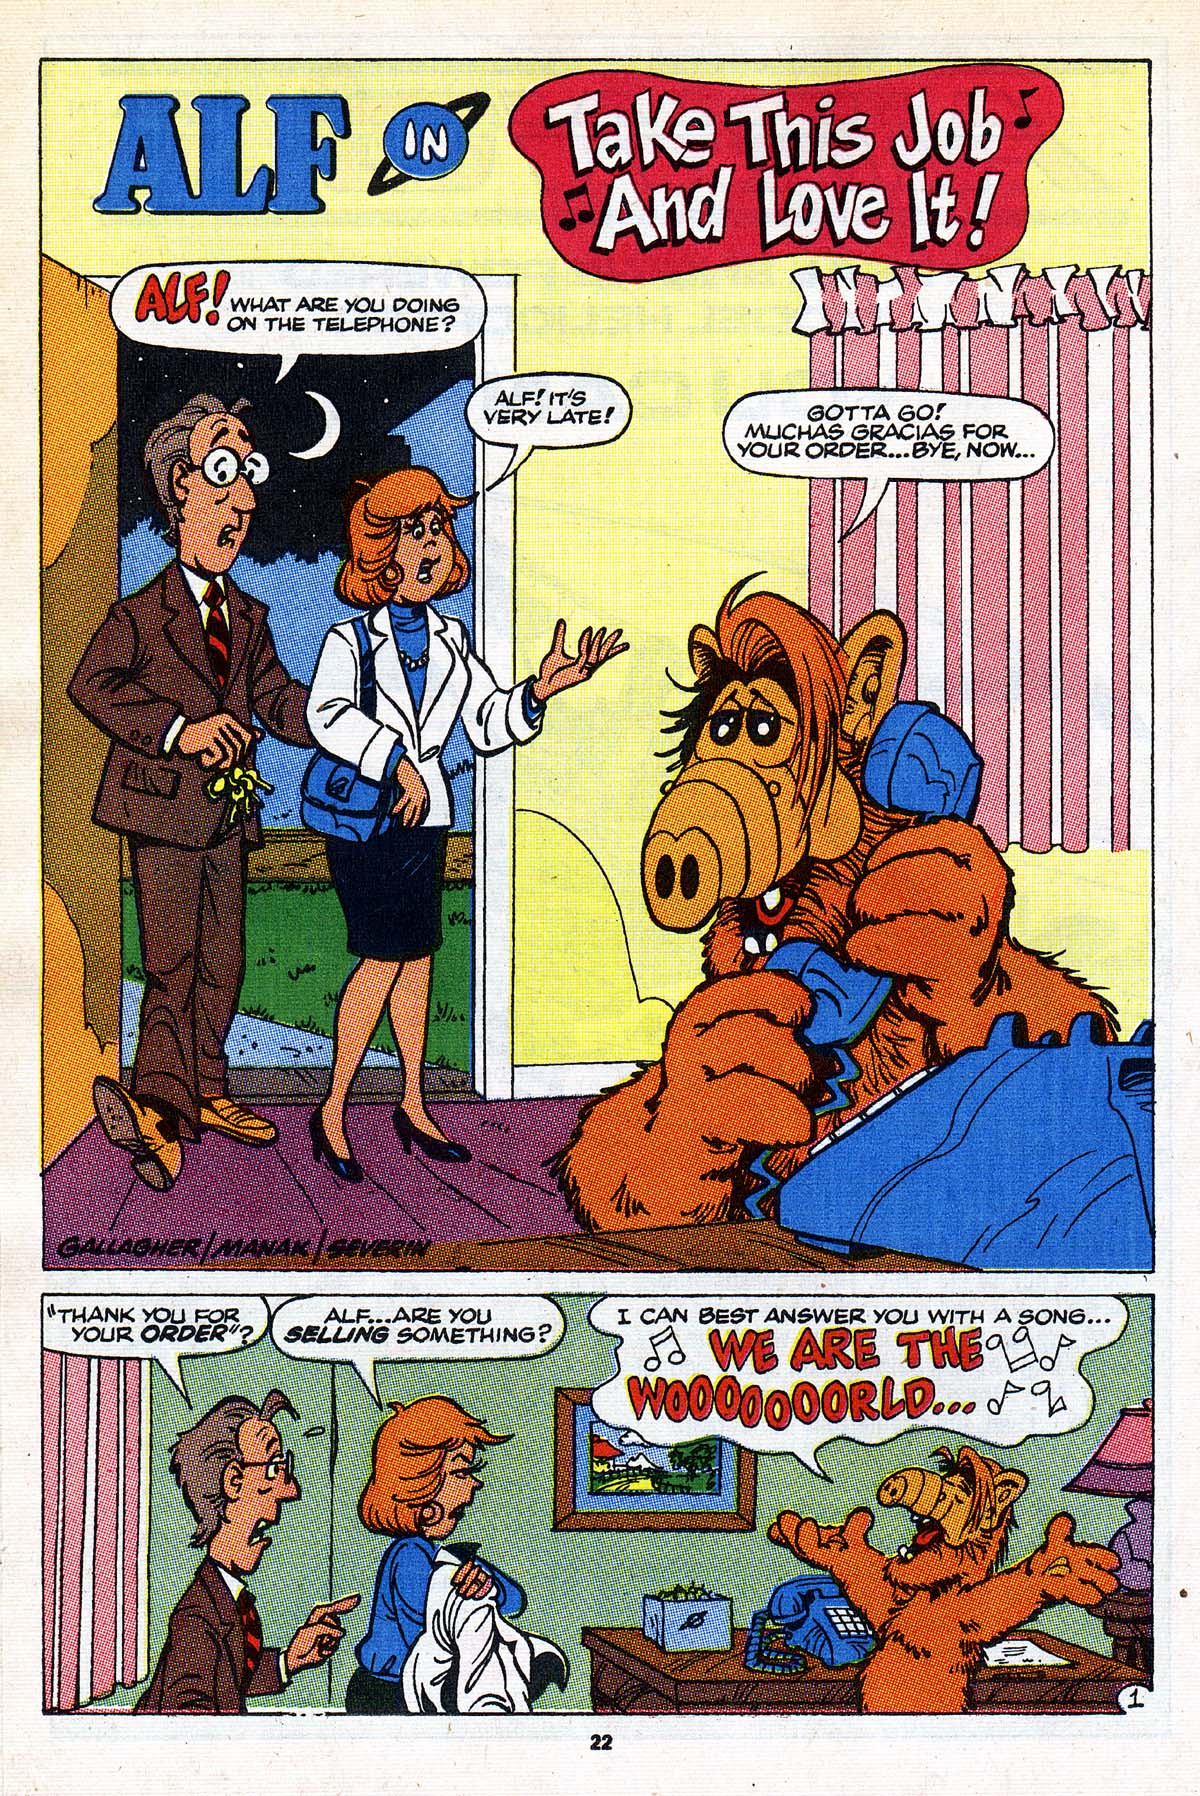 Read online ALF comic -  Issue #26 - 18